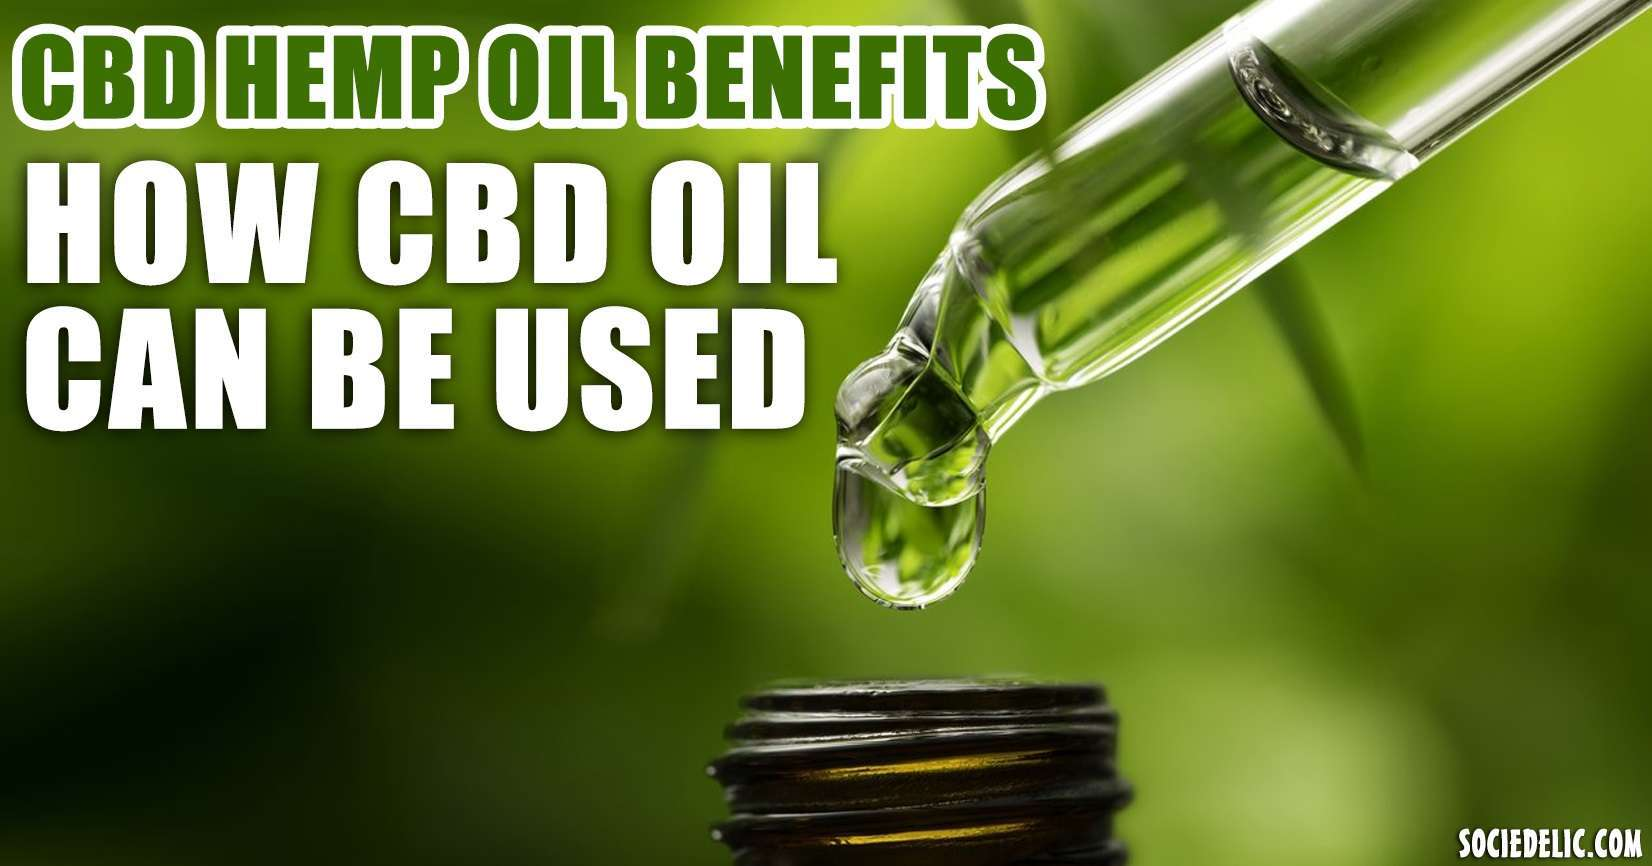 [Image: How-CBD-Oil-can-be-used-CBD-Hemp-Oil-Benefits.jpg]